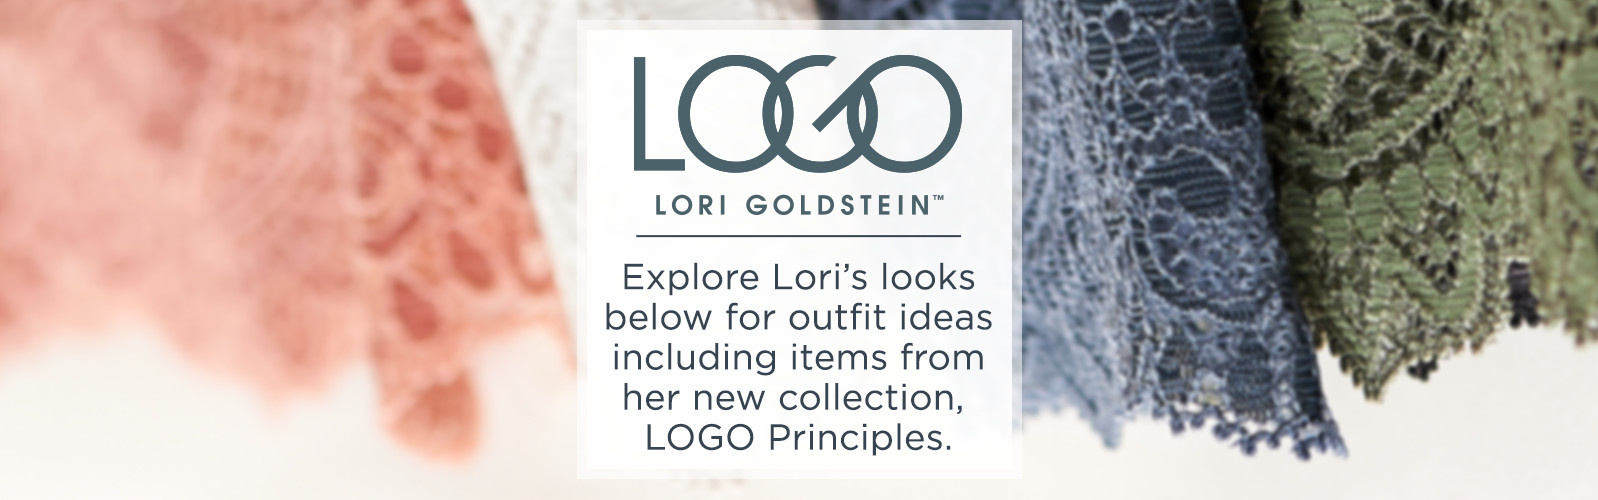 The LOGO Look Book  Shop Lori Goldstein's handpicked ensembles featuring items from her latest LOGO Principles collection